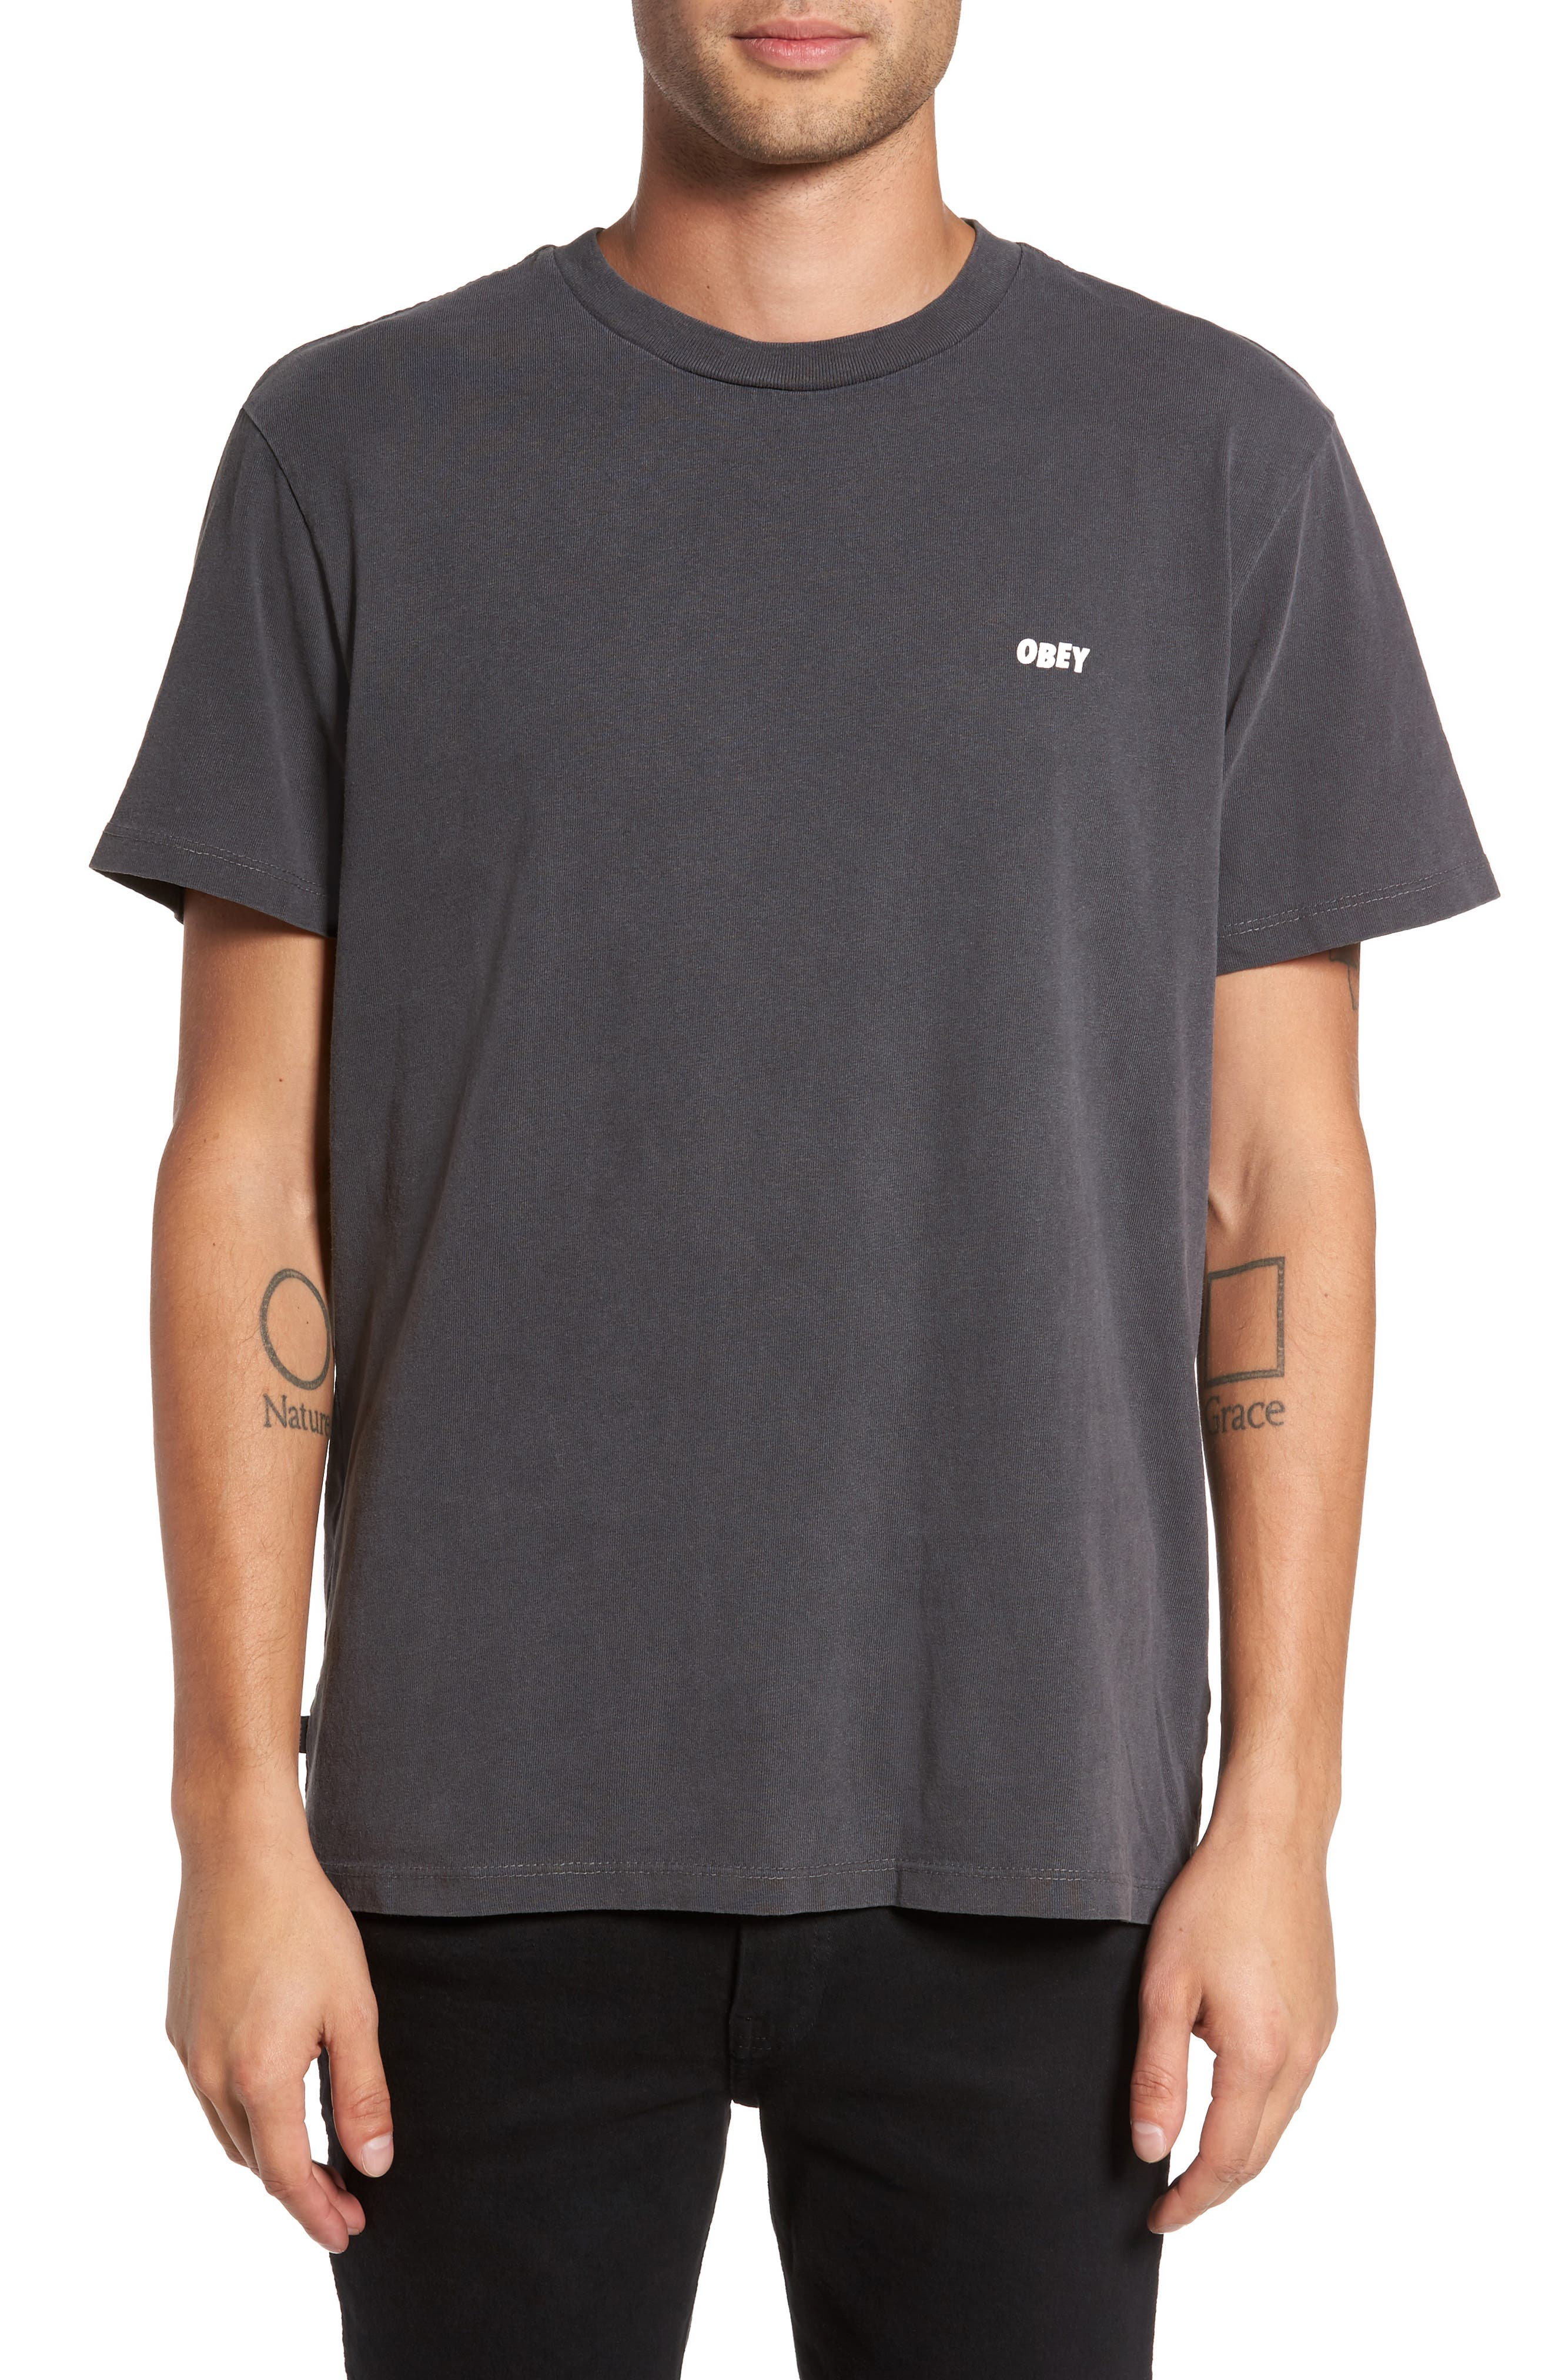 Eyes Graphic T-Shirt,                             Main thumbnail 1, color,                             Dusty Black